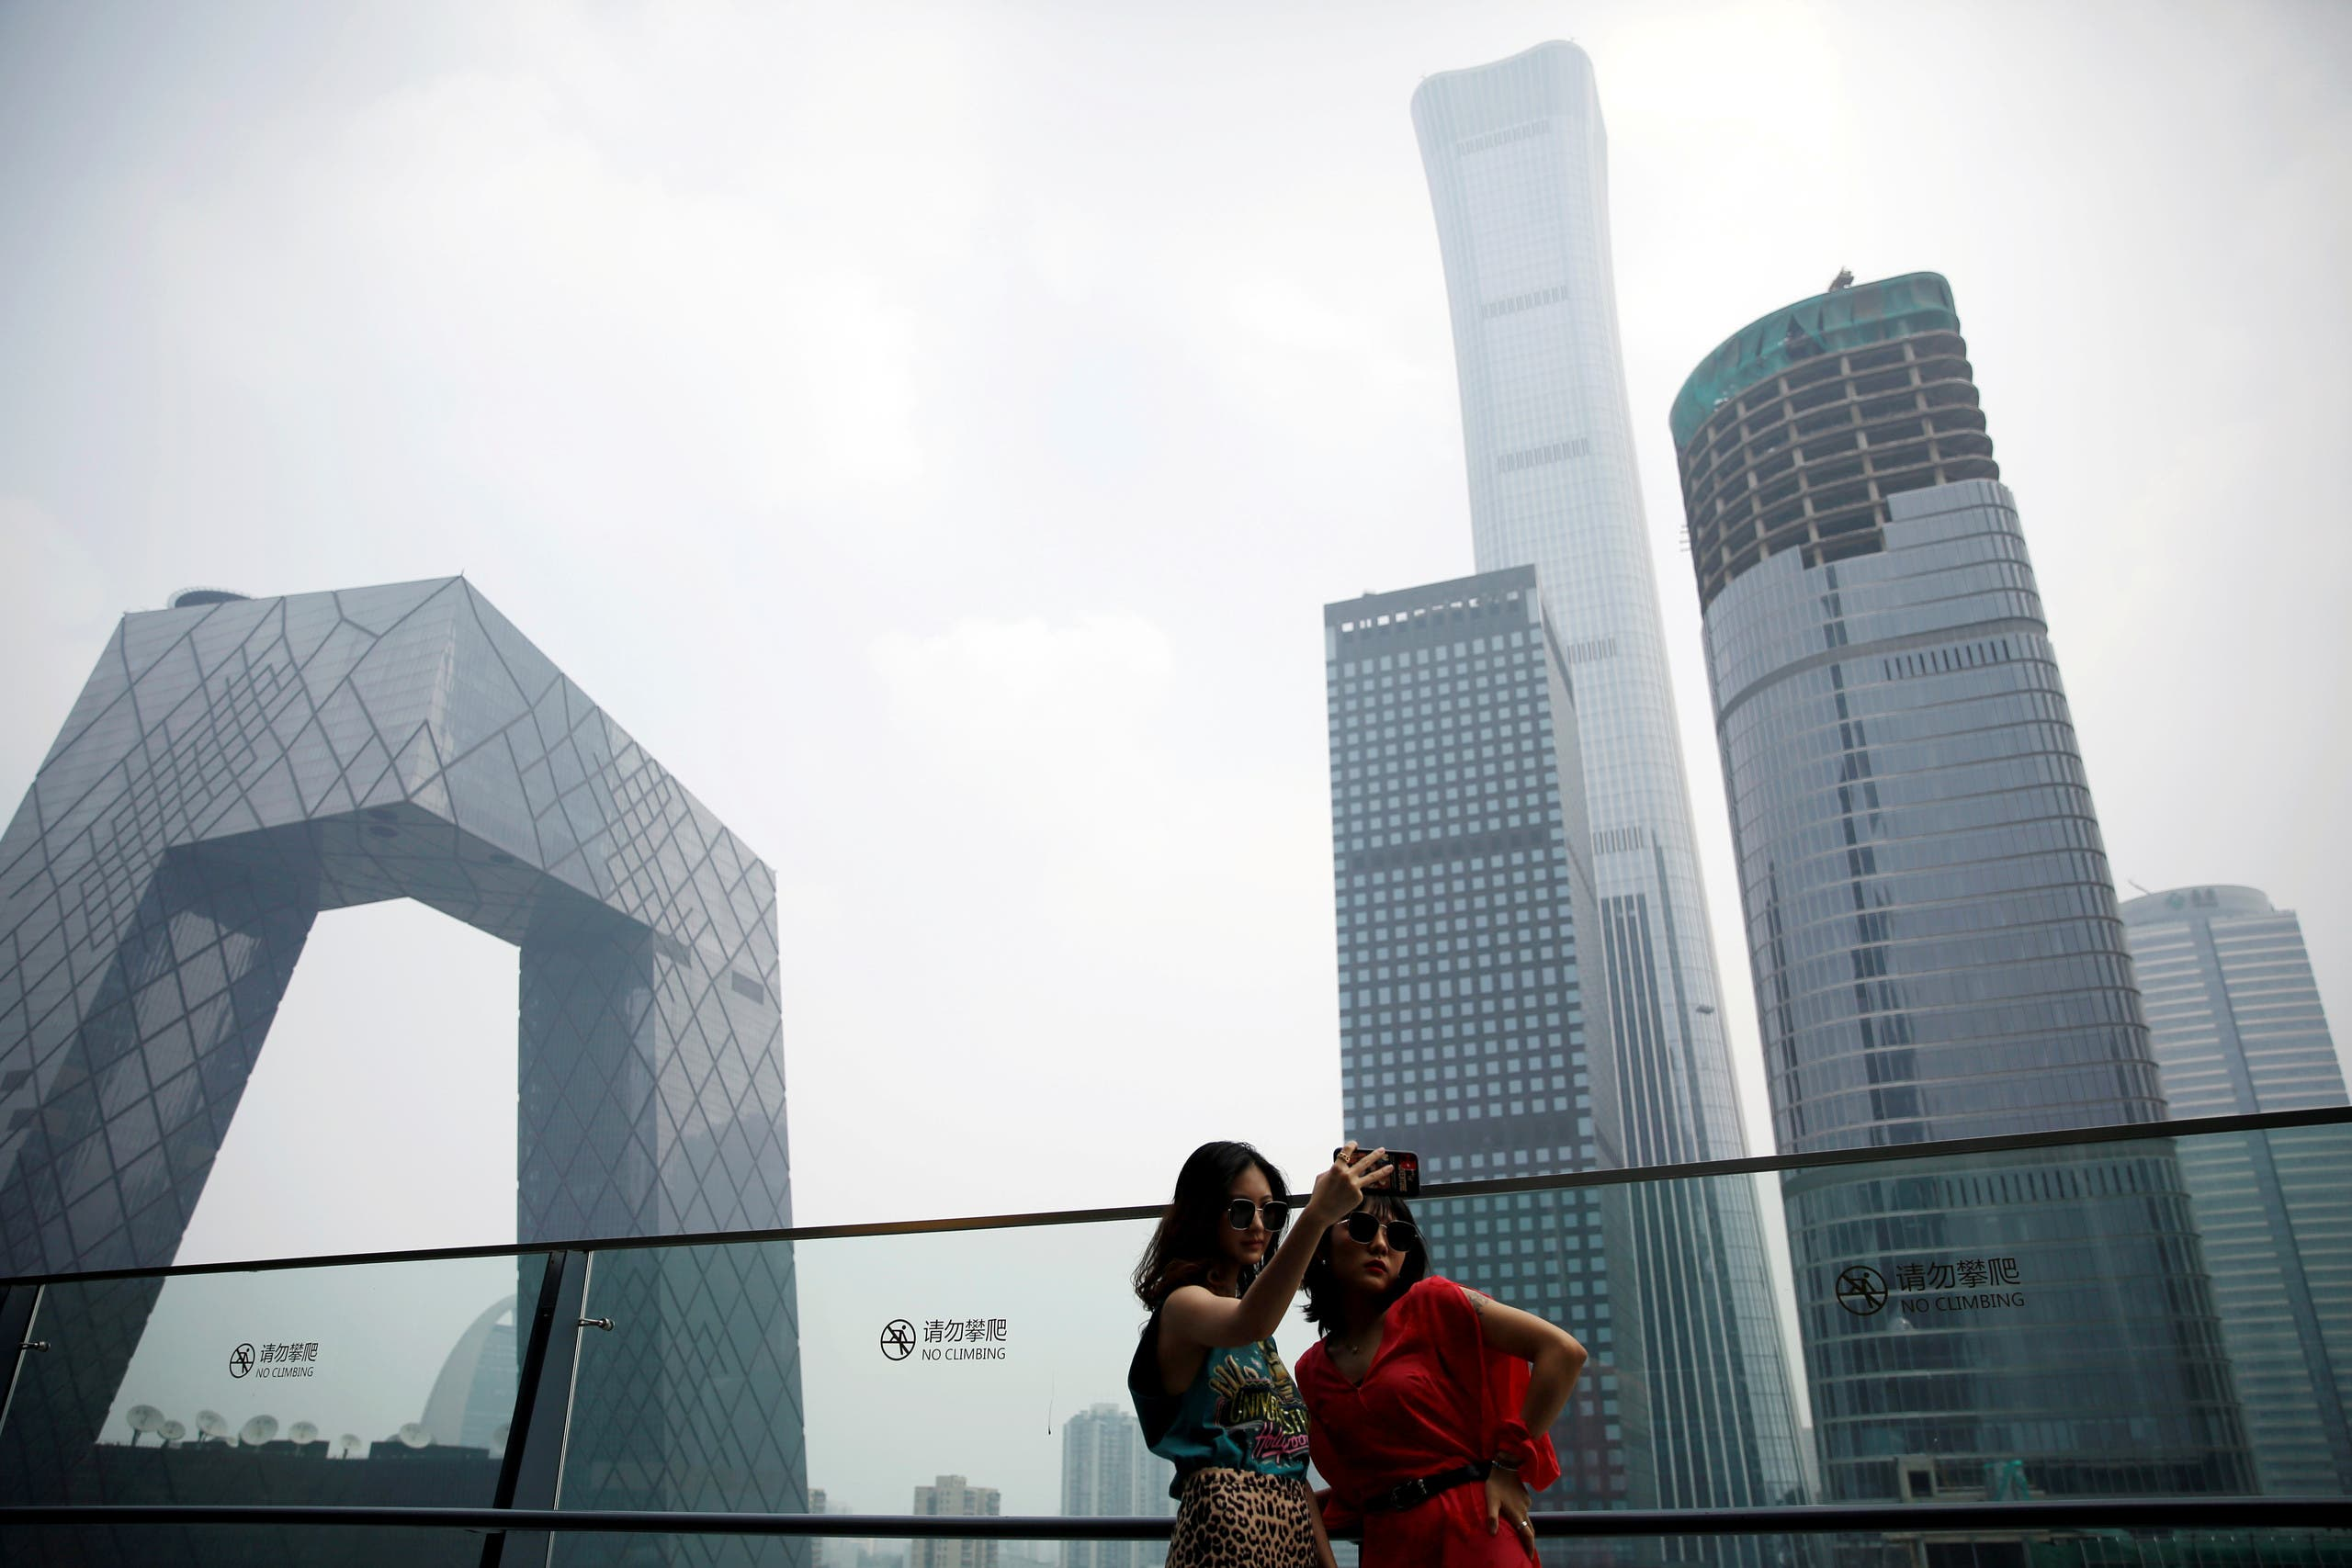 Women pose for pictures at a shopping mall near the CCTV headquarters and China Zun skyscraper in Beijing's central business district (CBD), China, July 16, 2020. (Reuters)